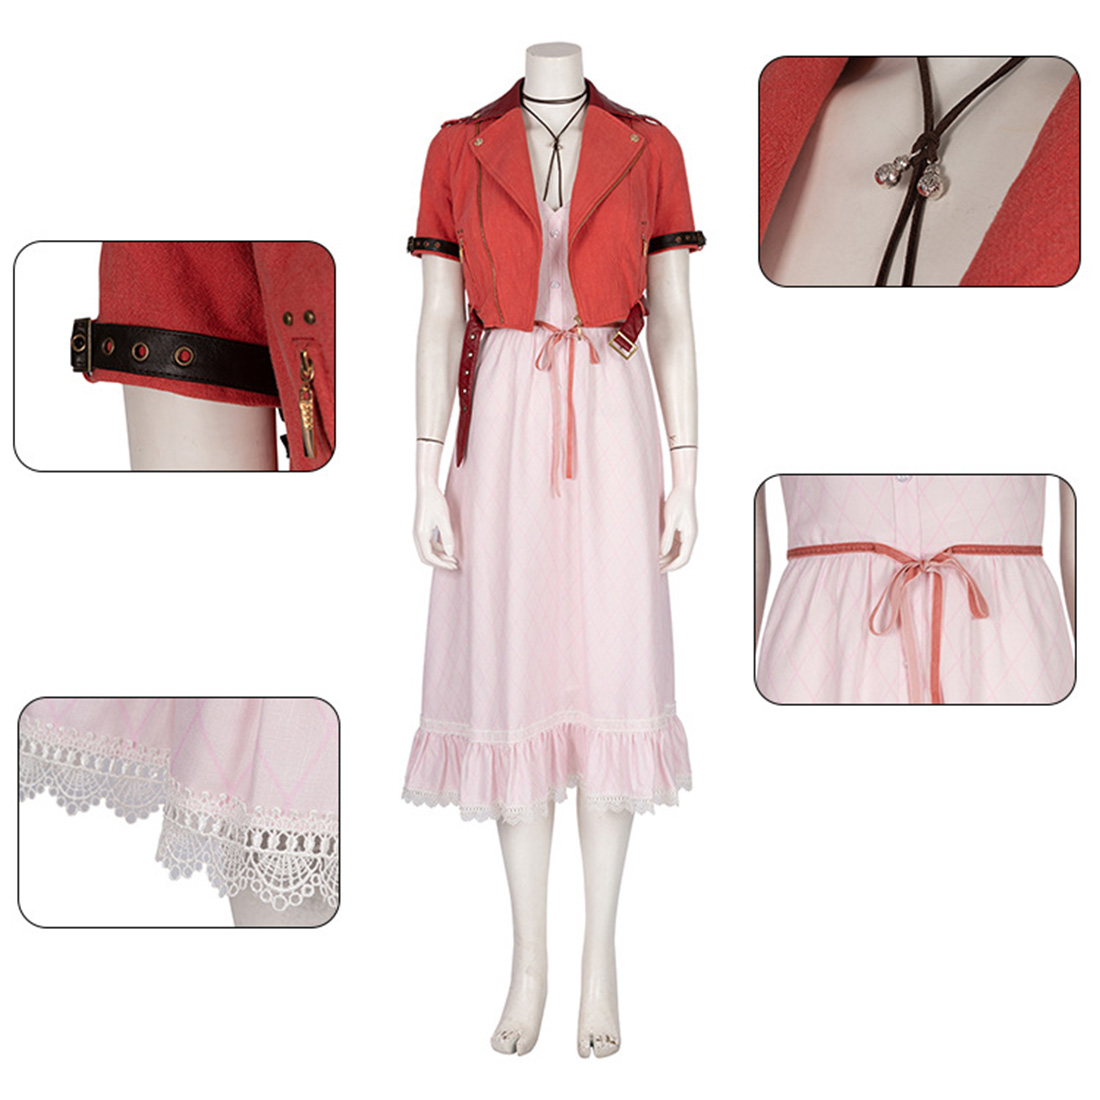 Final Fantasy VII Remake Aerith Dress Cosplay Costume Full Set